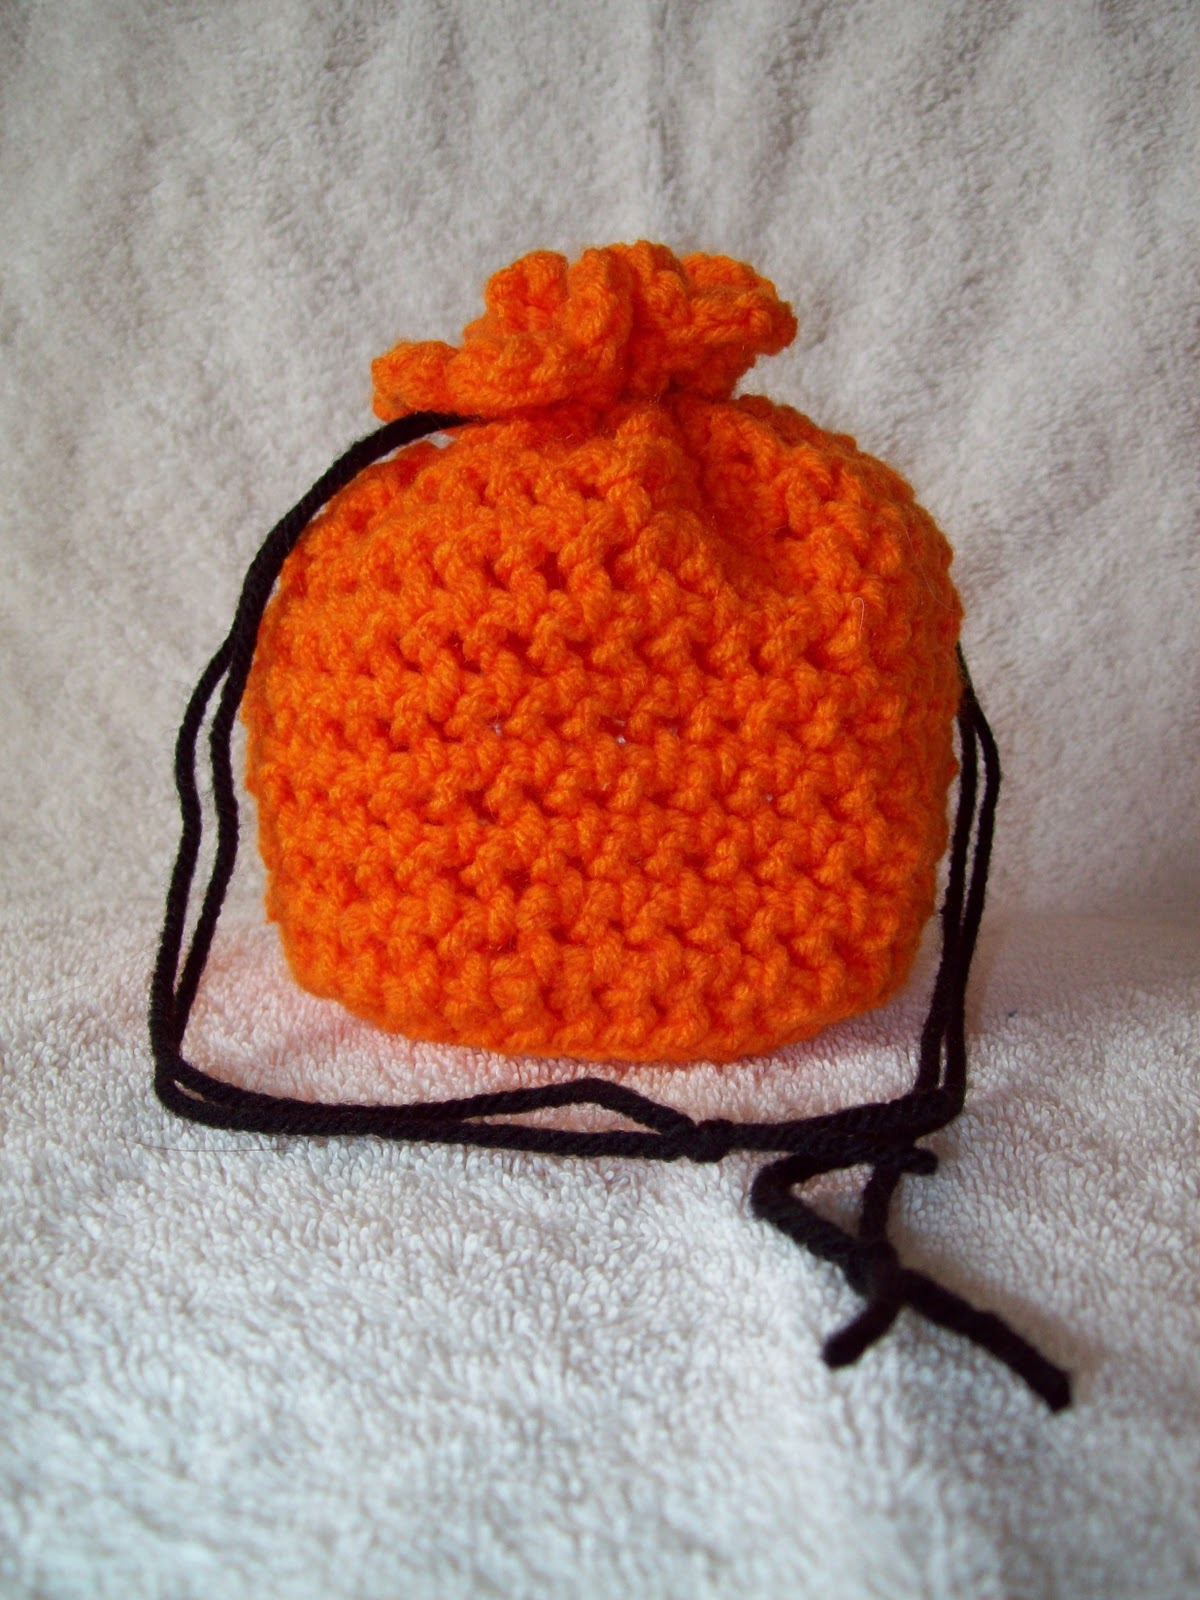 String Bag Crochet Pattern : Stitchin the Night Away: Crochet Mini Drawstring Bag